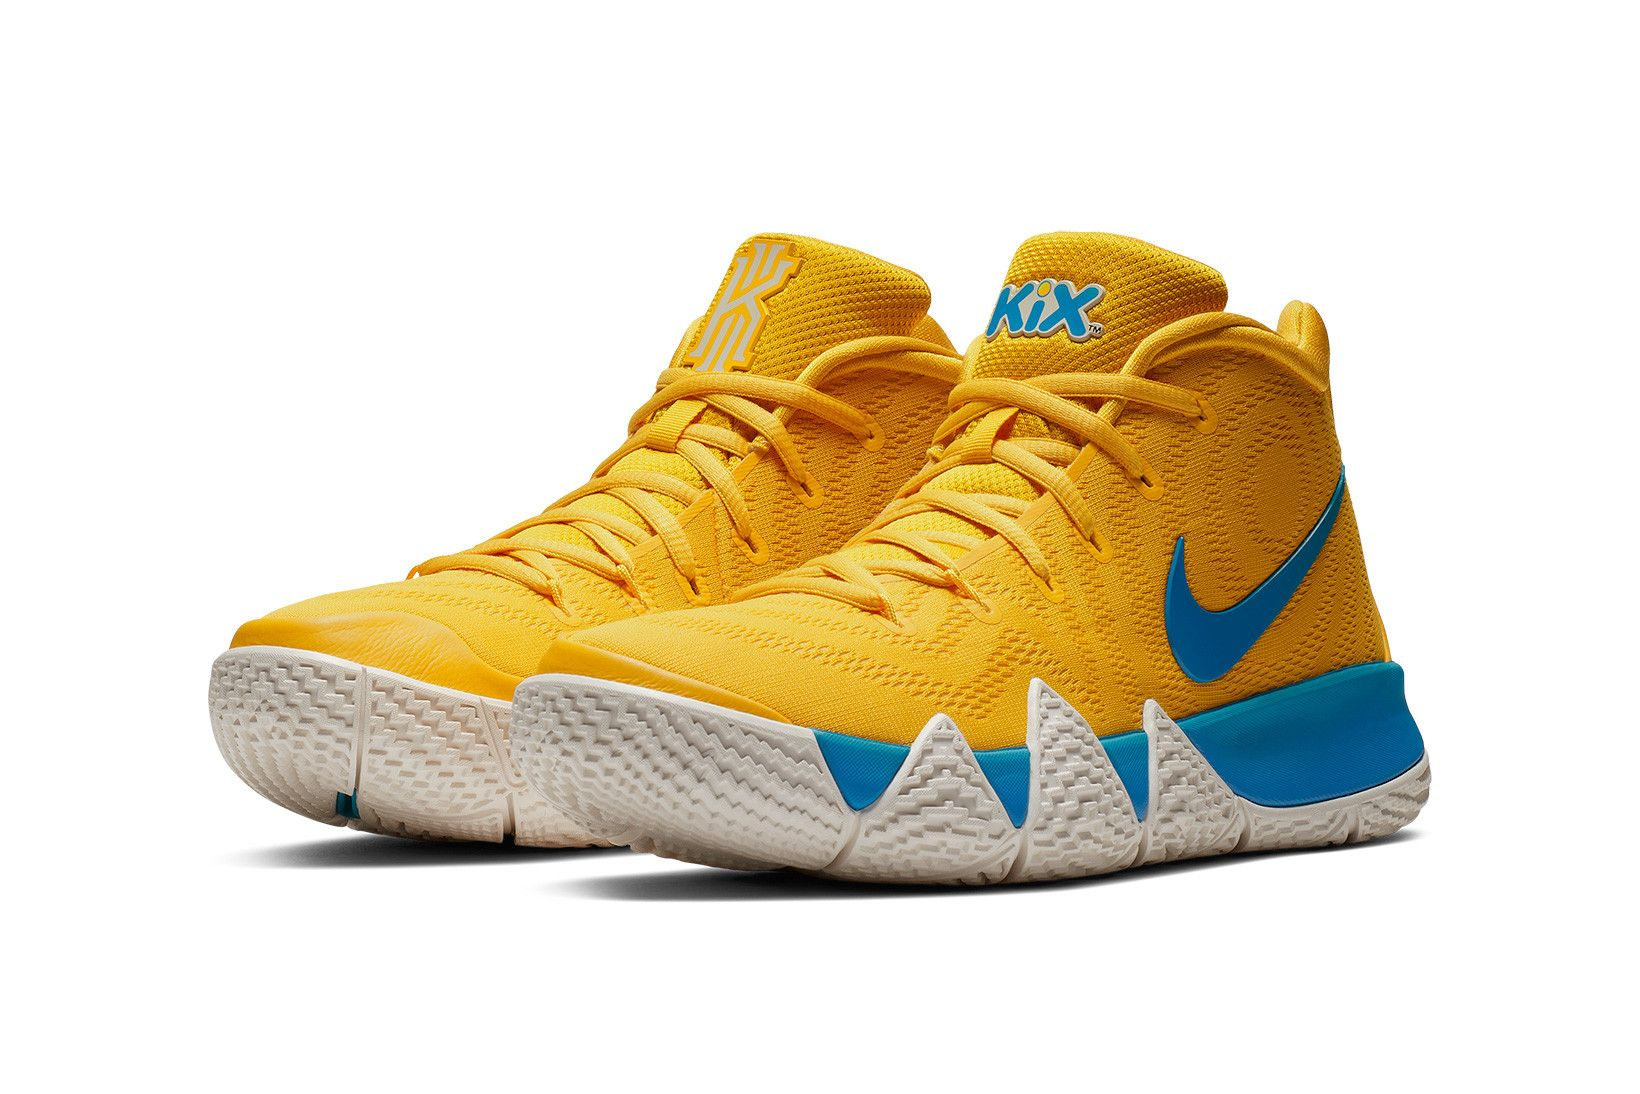 low priced 2762b fd291 The Nike Kyrie 4